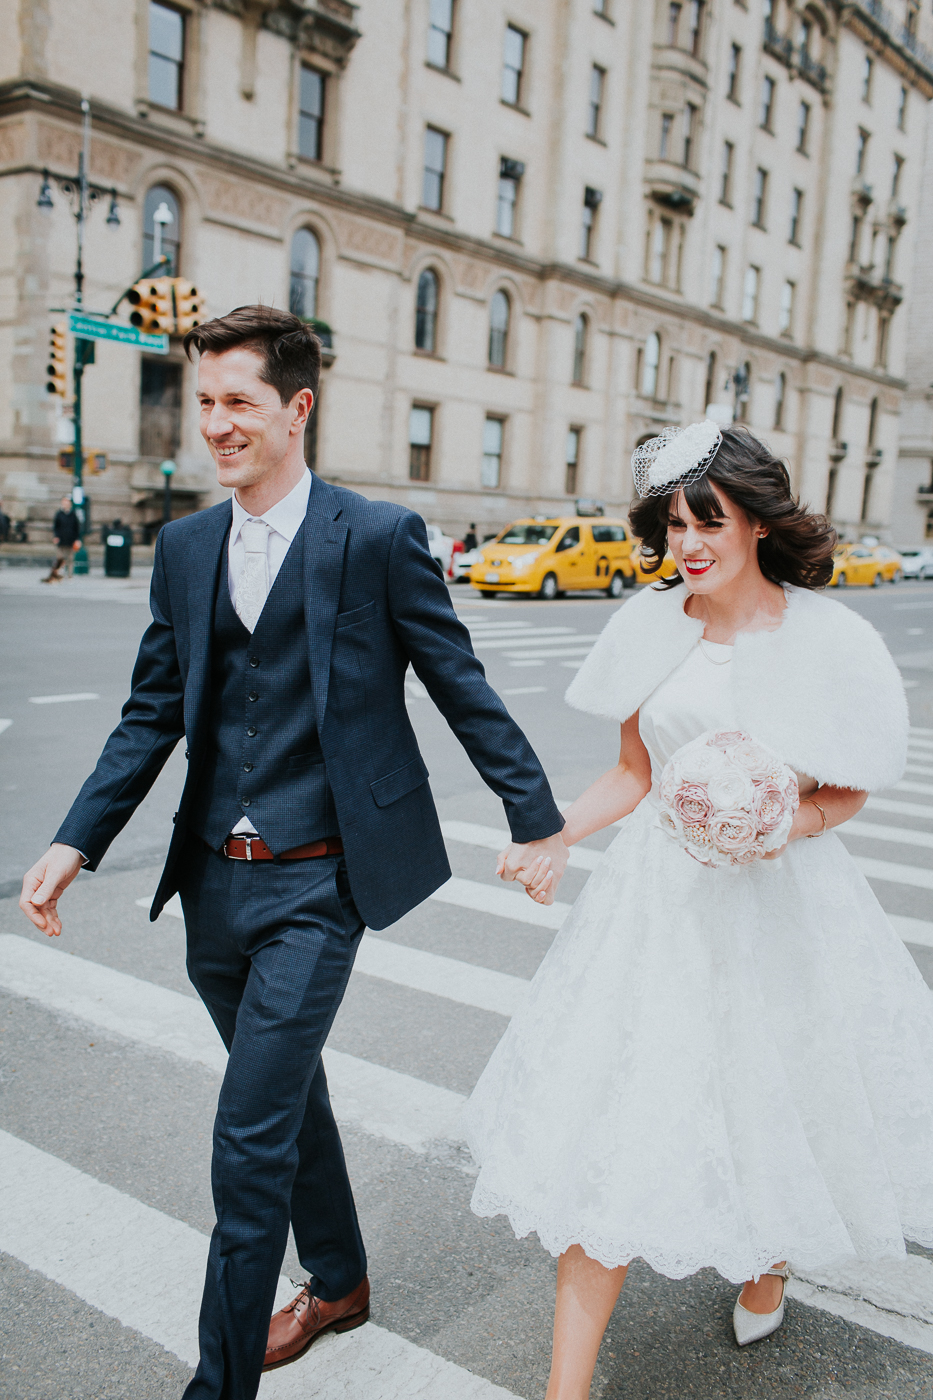 Ladies-Pavilion-Central-Park-NYC-Documentary-Elopement-Wedding-Photographer-14.jpg